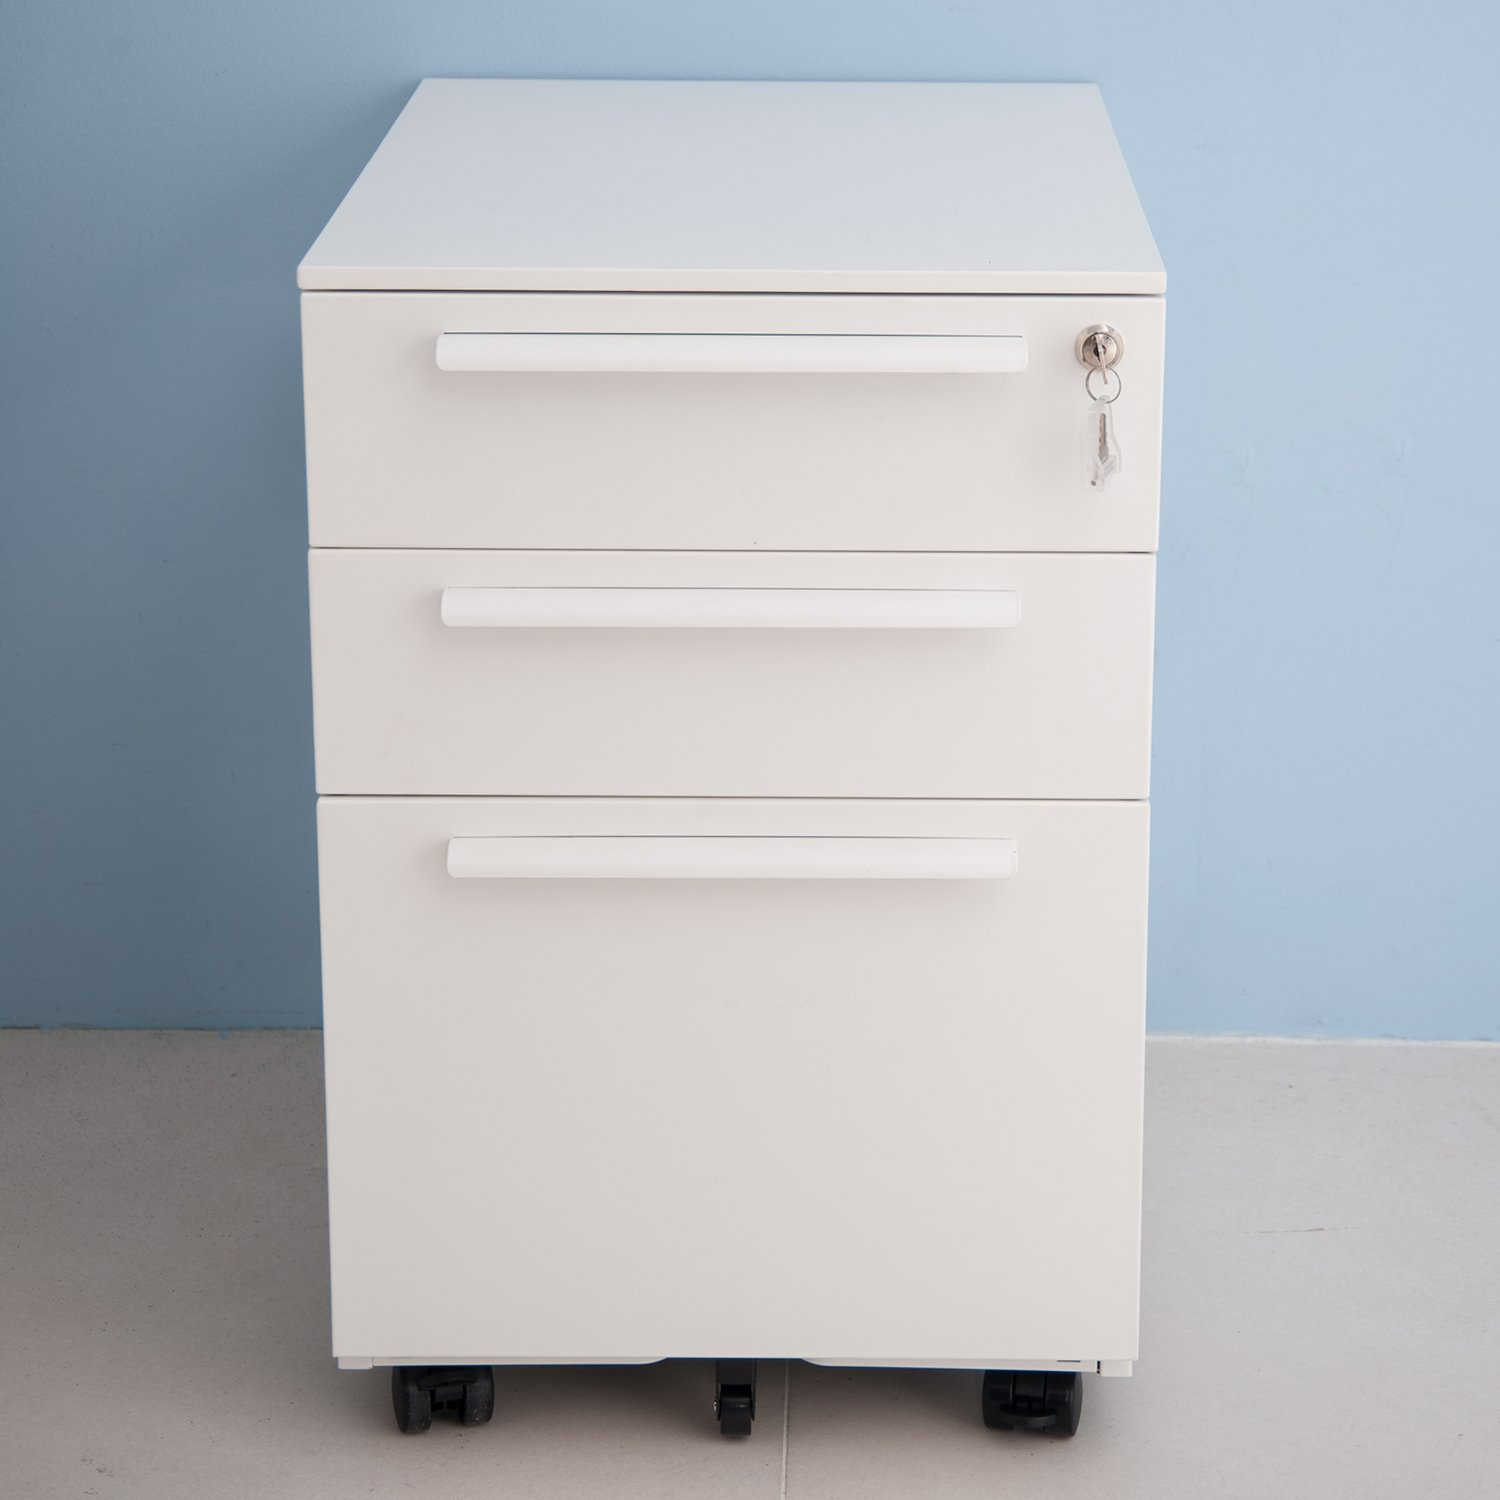 Merax 3 Drawer Mobile Metal Solid Storage File Cabinet with Keys, White